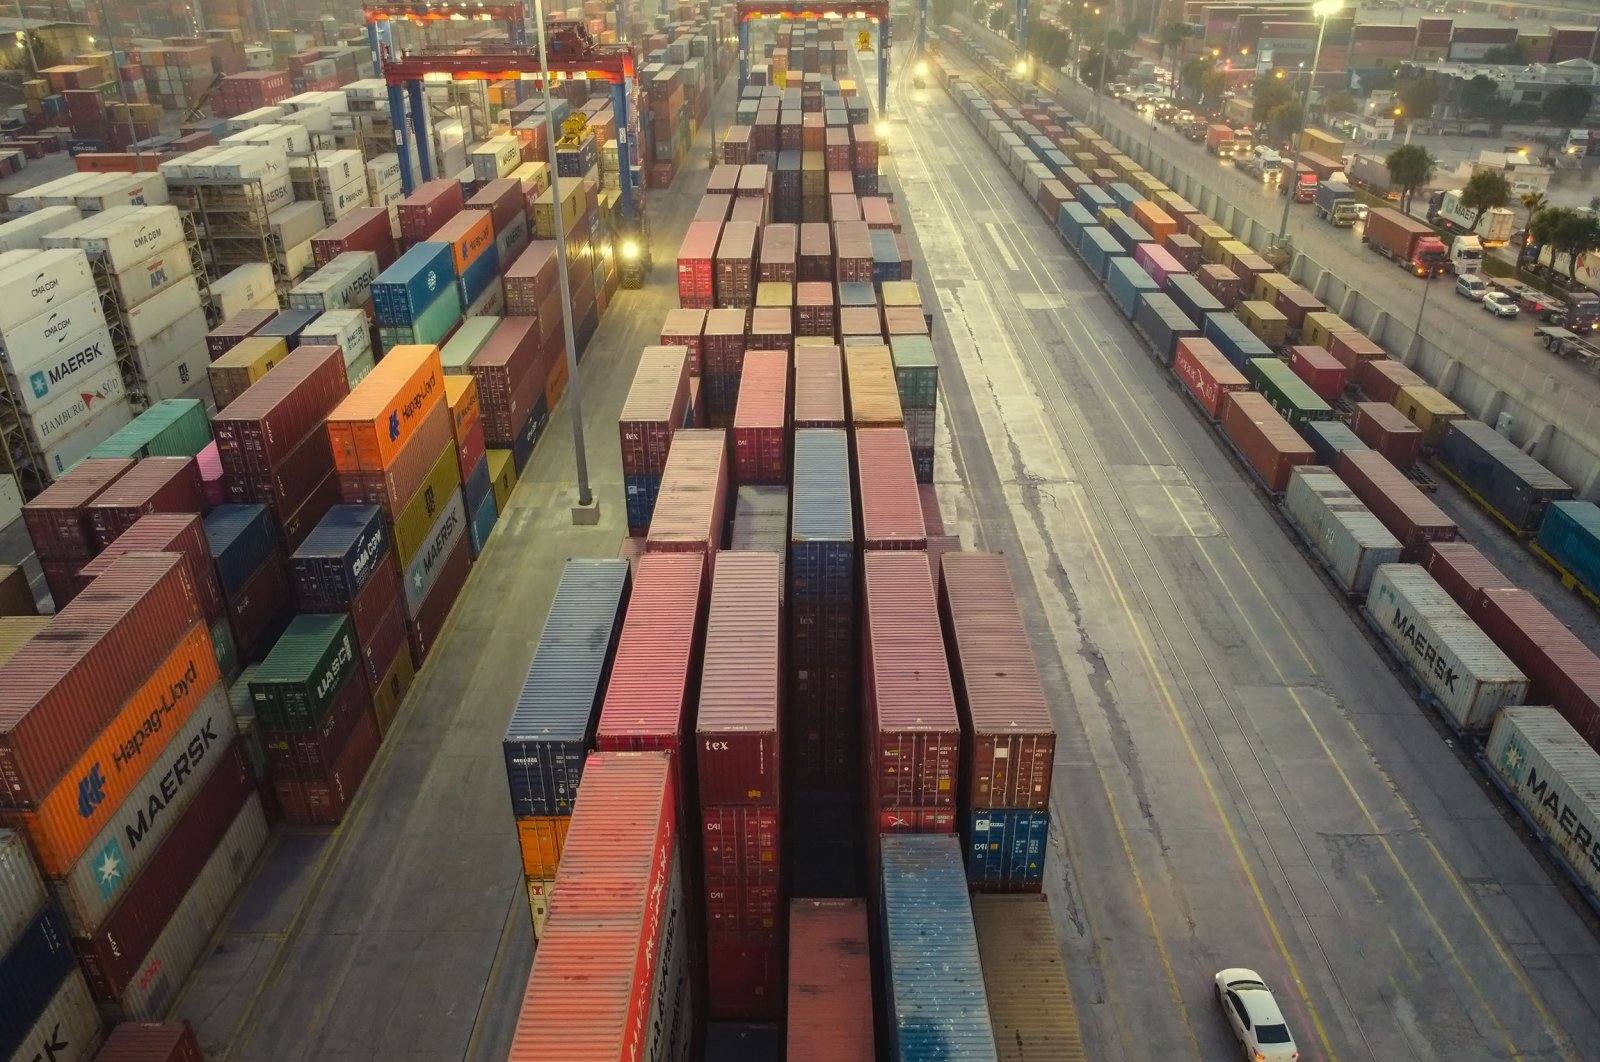 A cargo container warehouse at the Mersin International Port, Mersin, southern Turkey, December 2020. (Shutterstock Photo)